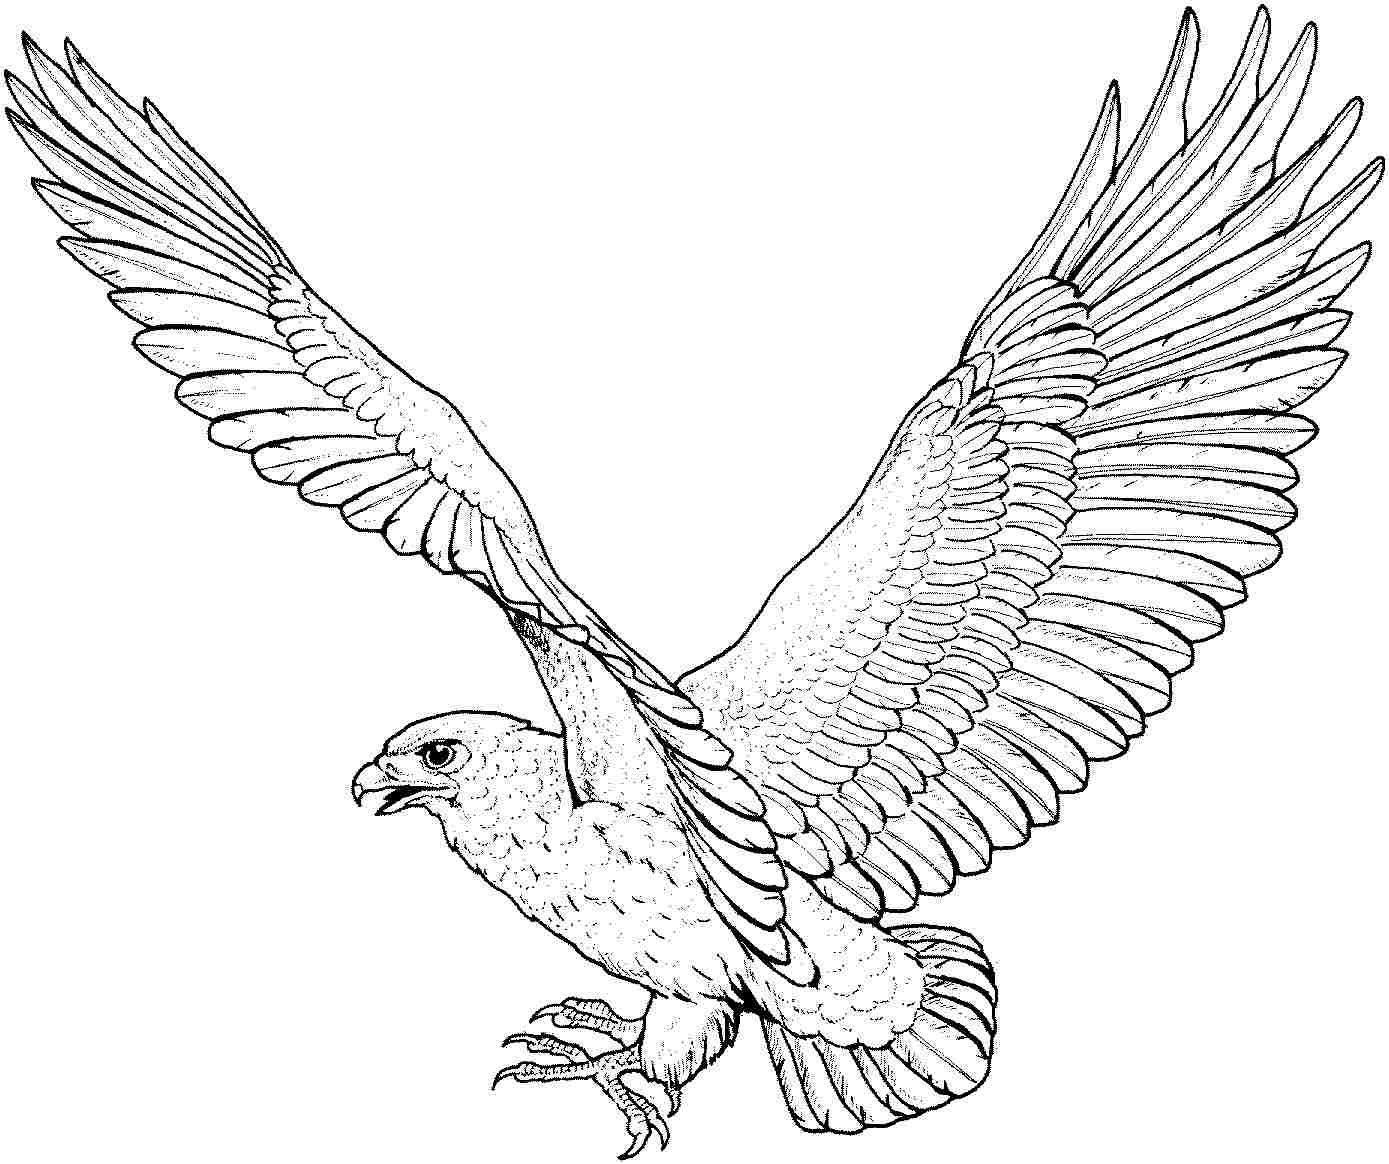 eagles coloring pages free printable eagle coloring pages for kids coloring pages eagles